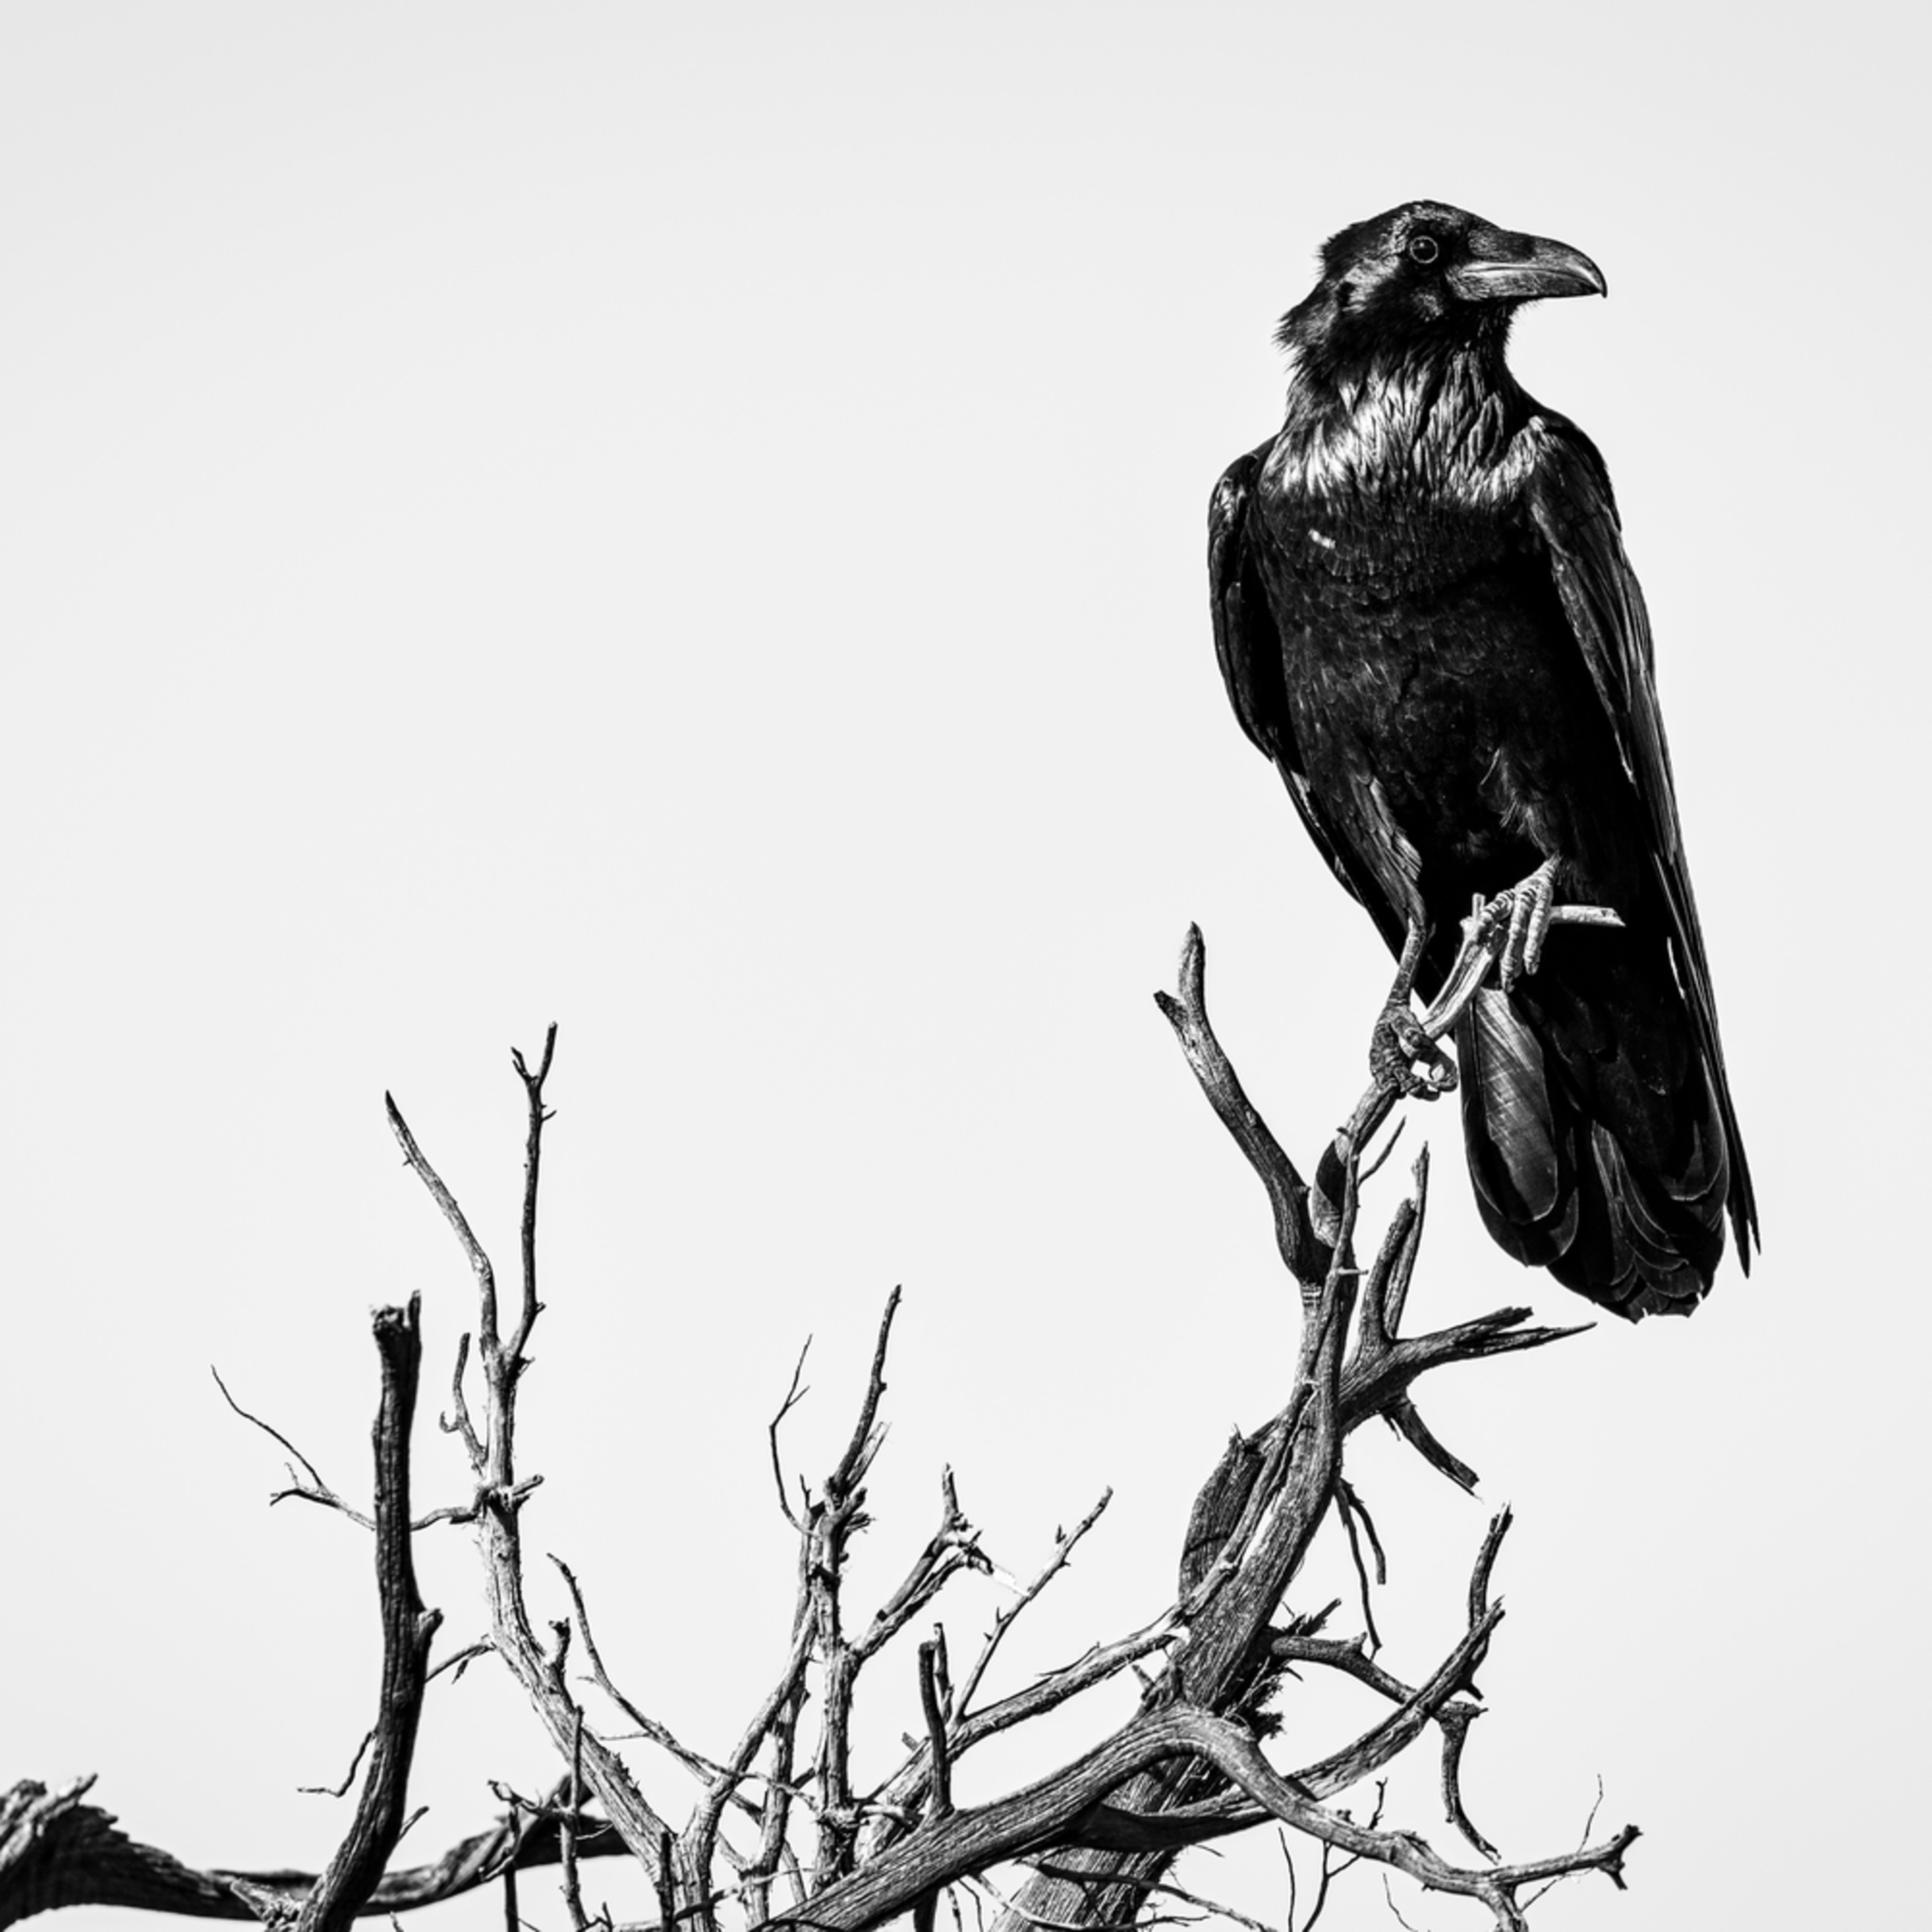 Andy crawford photography raven 1 uclav3